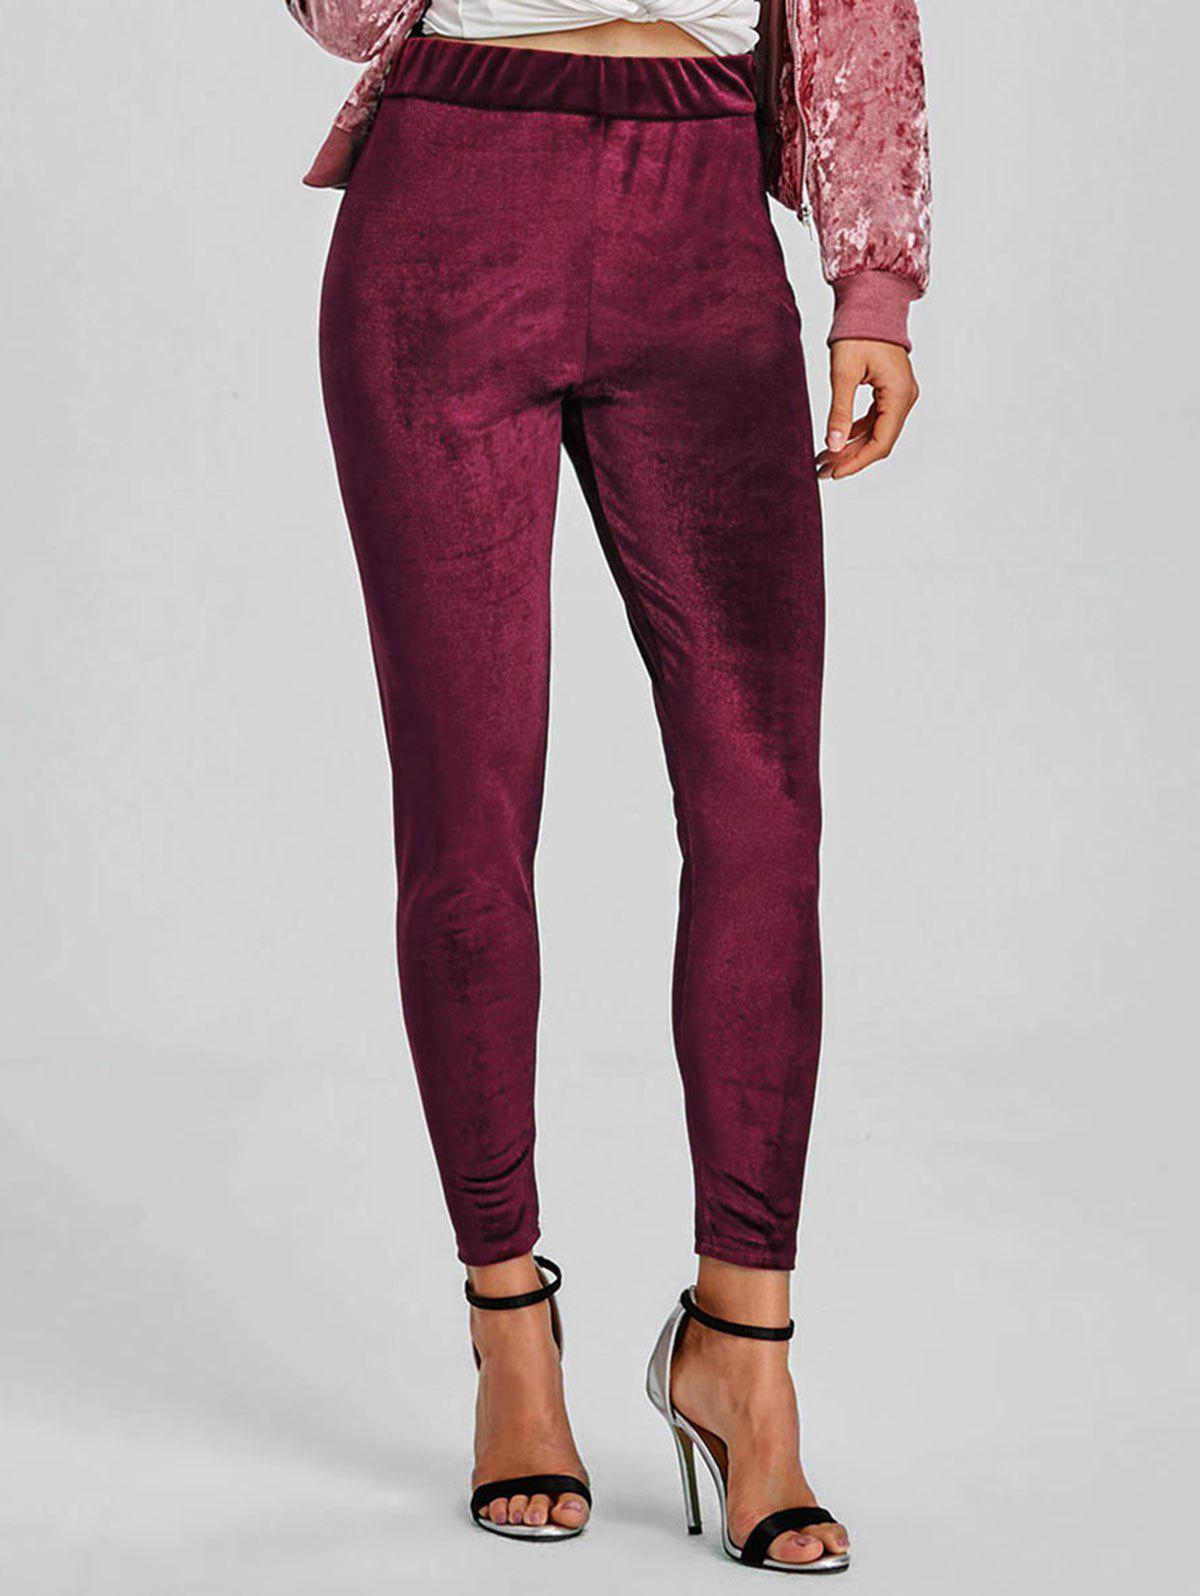 Velvet Elastic Waist Skinny Pants - WINE RED XL